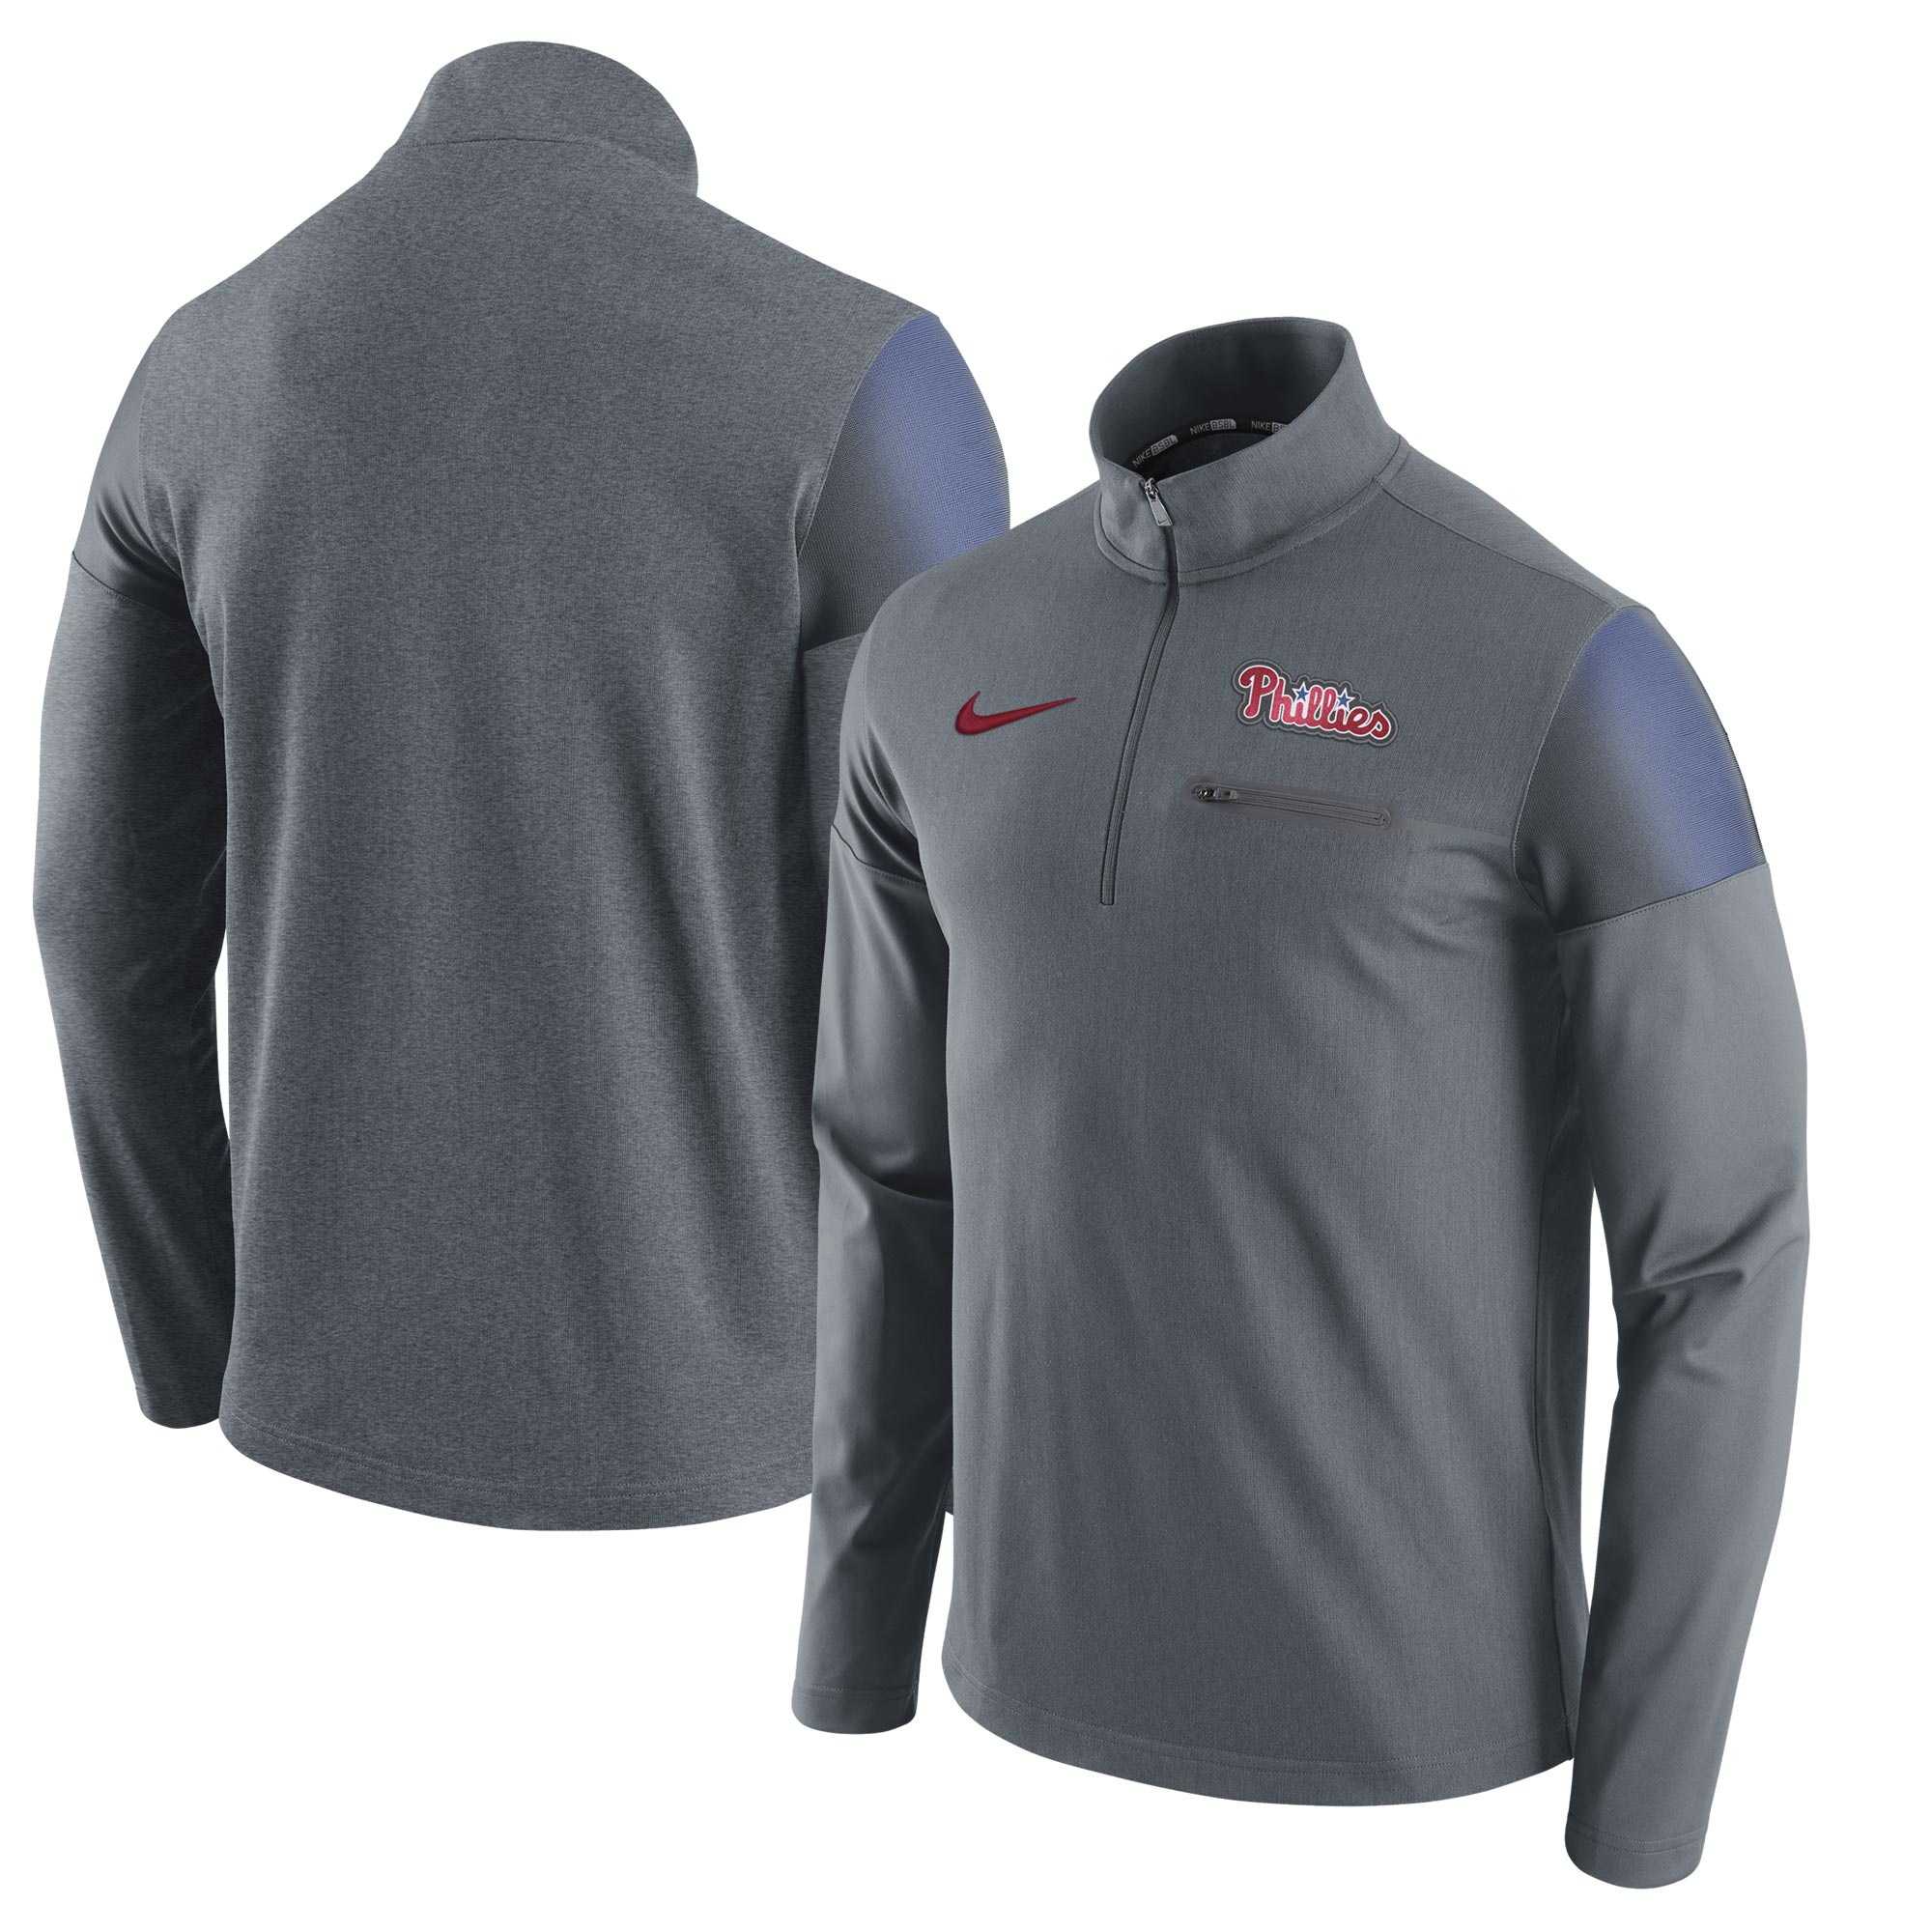 Philadelphia Phillies Nike Elite Half-Zip Pullover Jacket - Gray